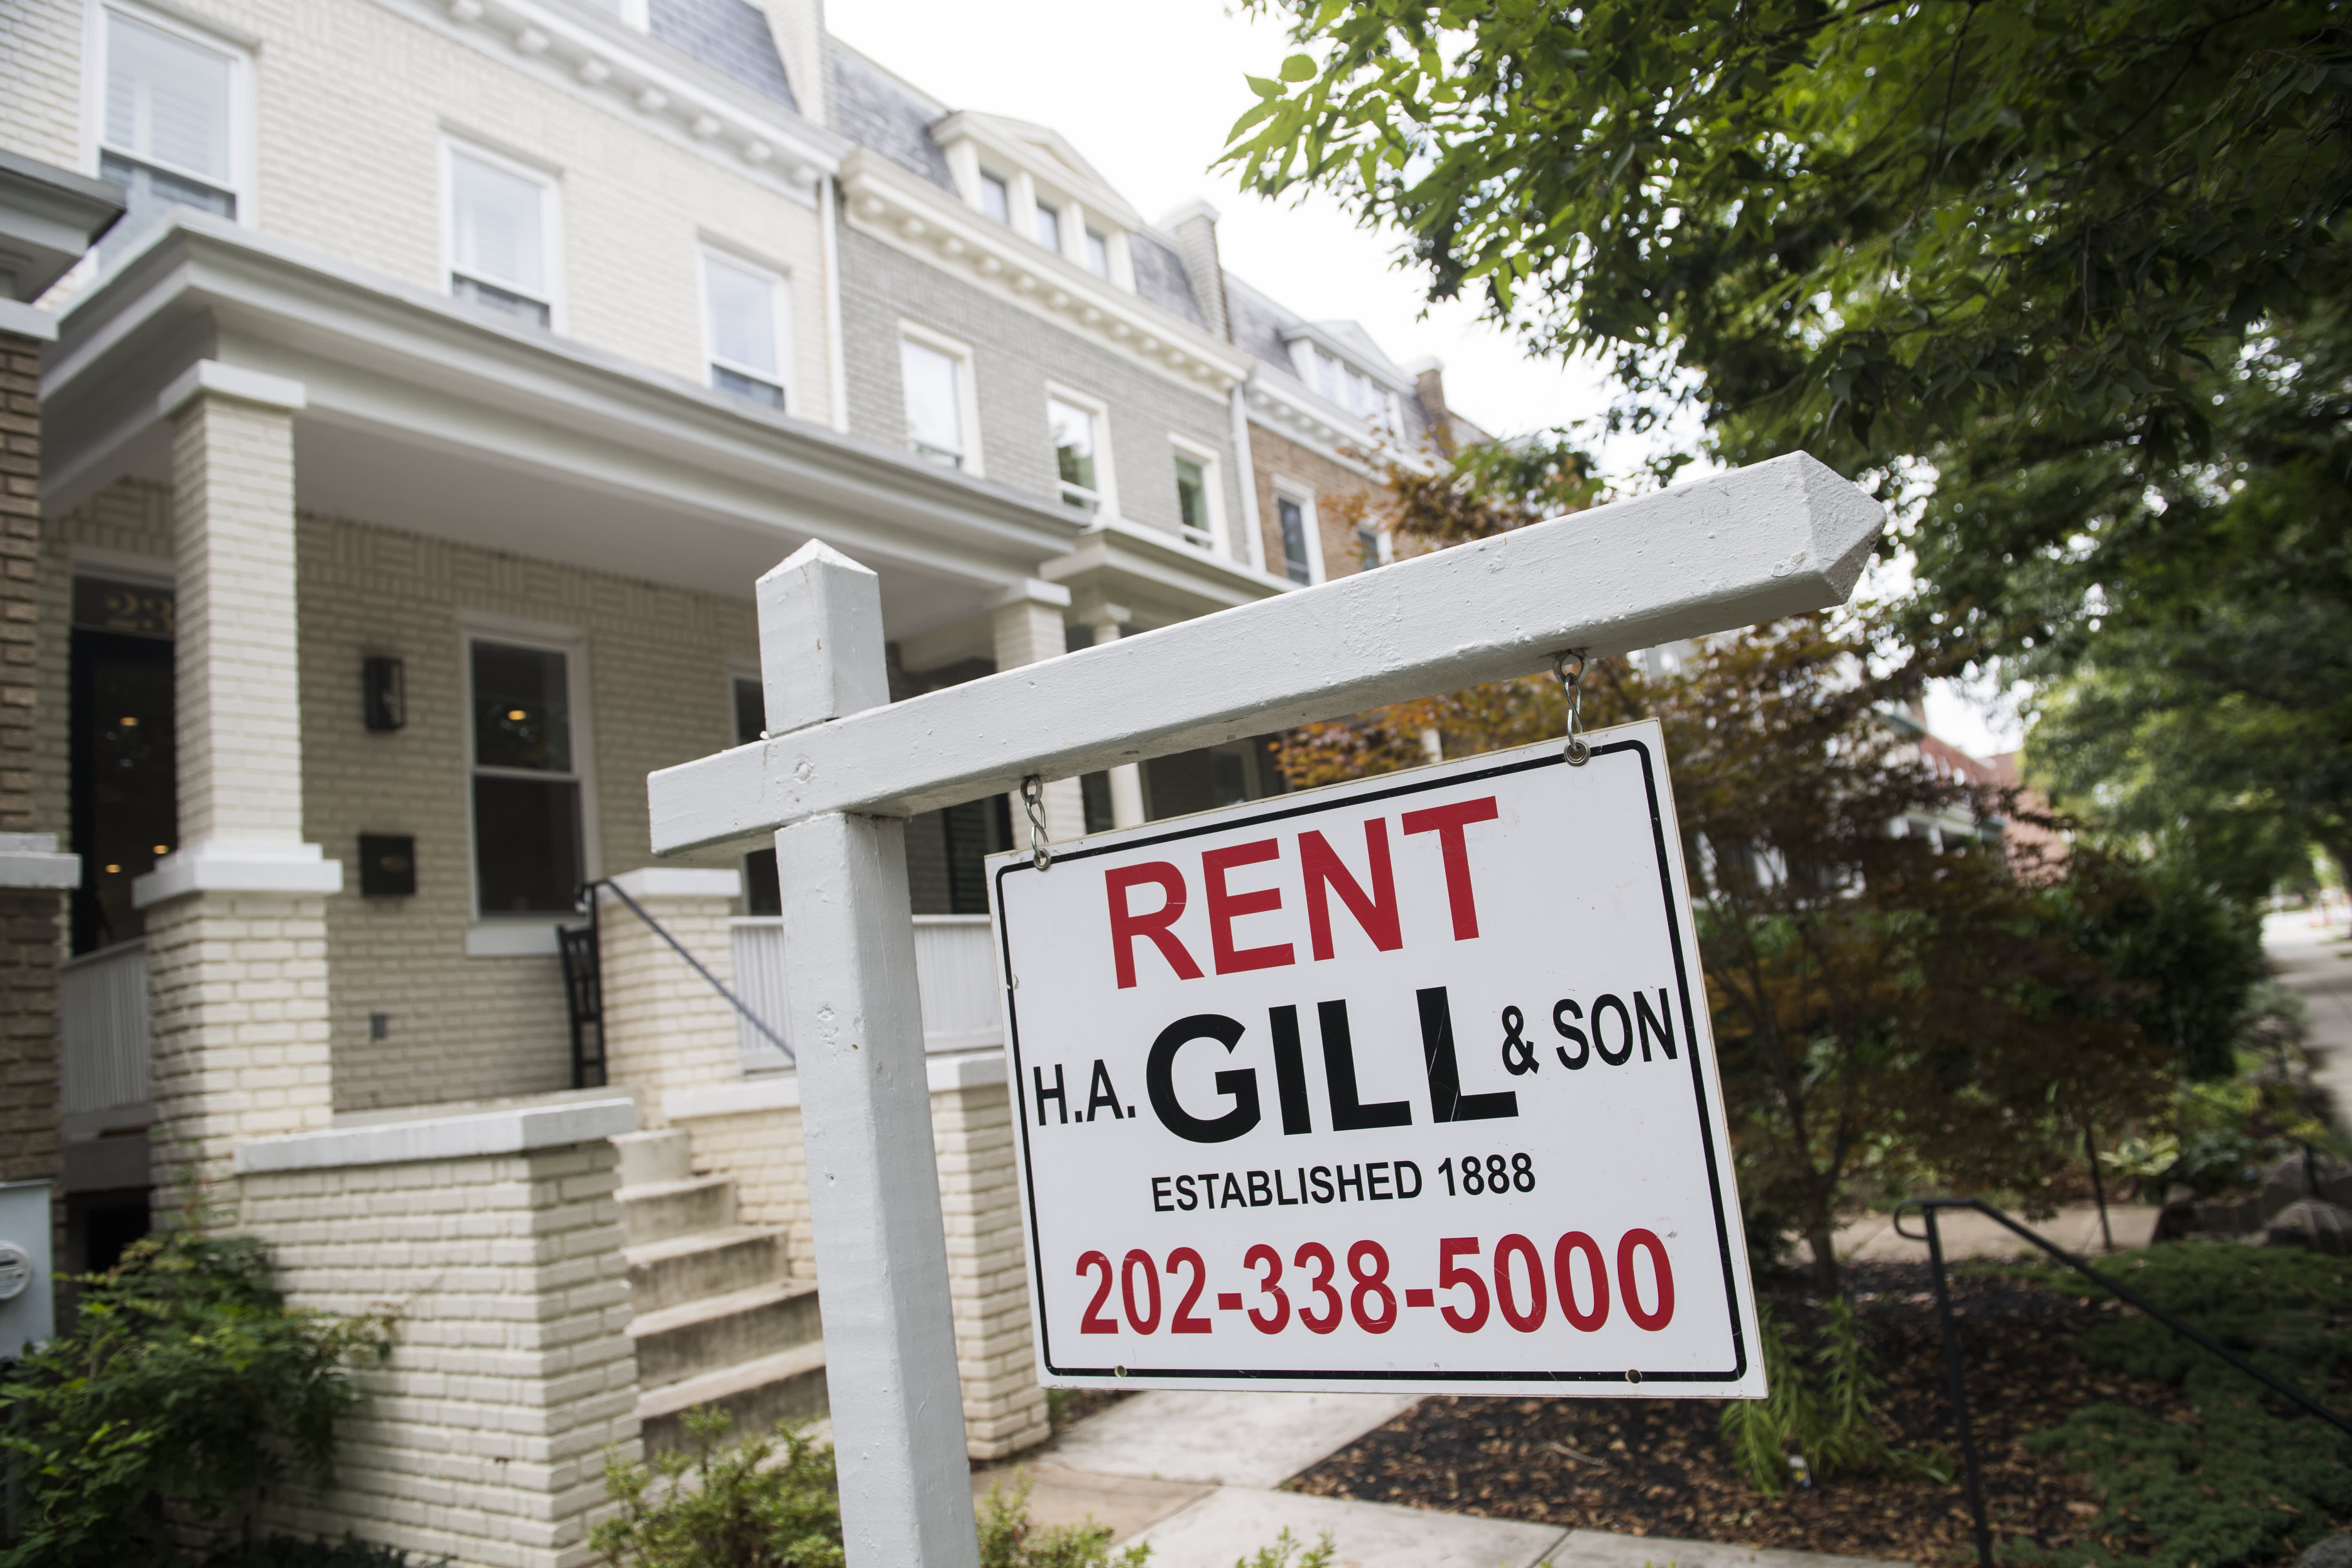 Renting a single-family house just got more expensive